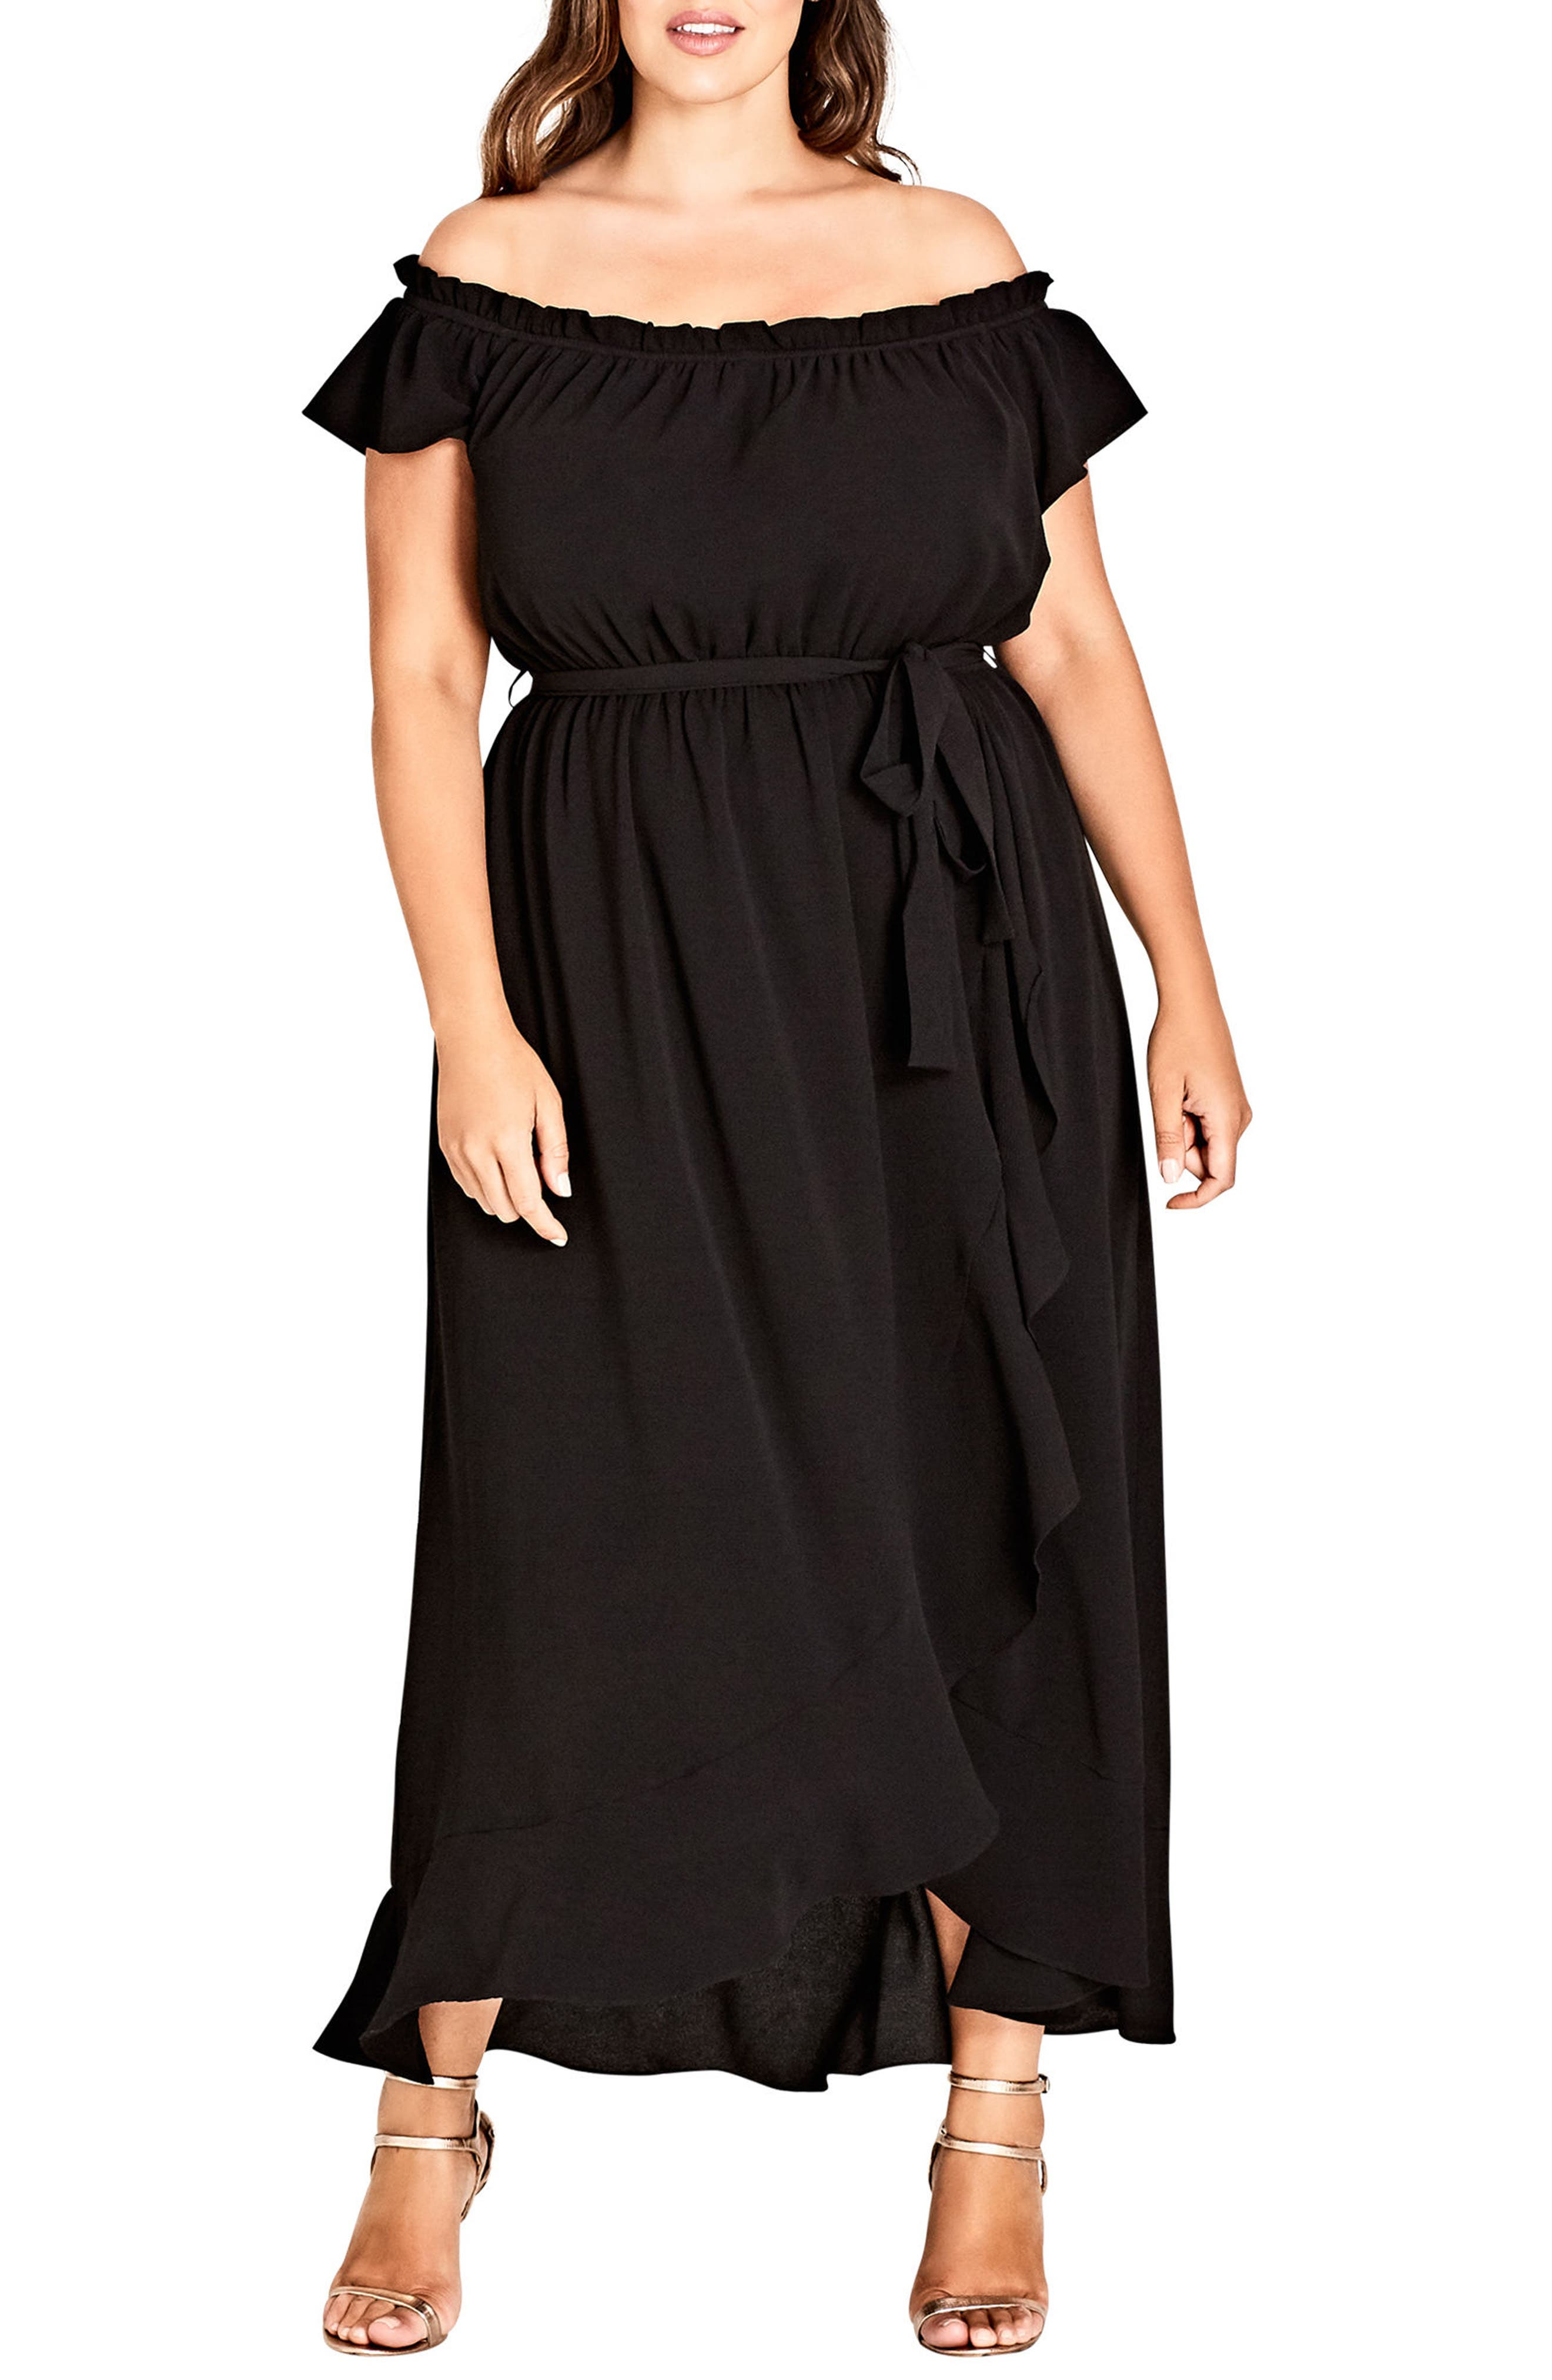 CITY CHIC Ruffle Off the Shoulder Dress, Main, color, 006